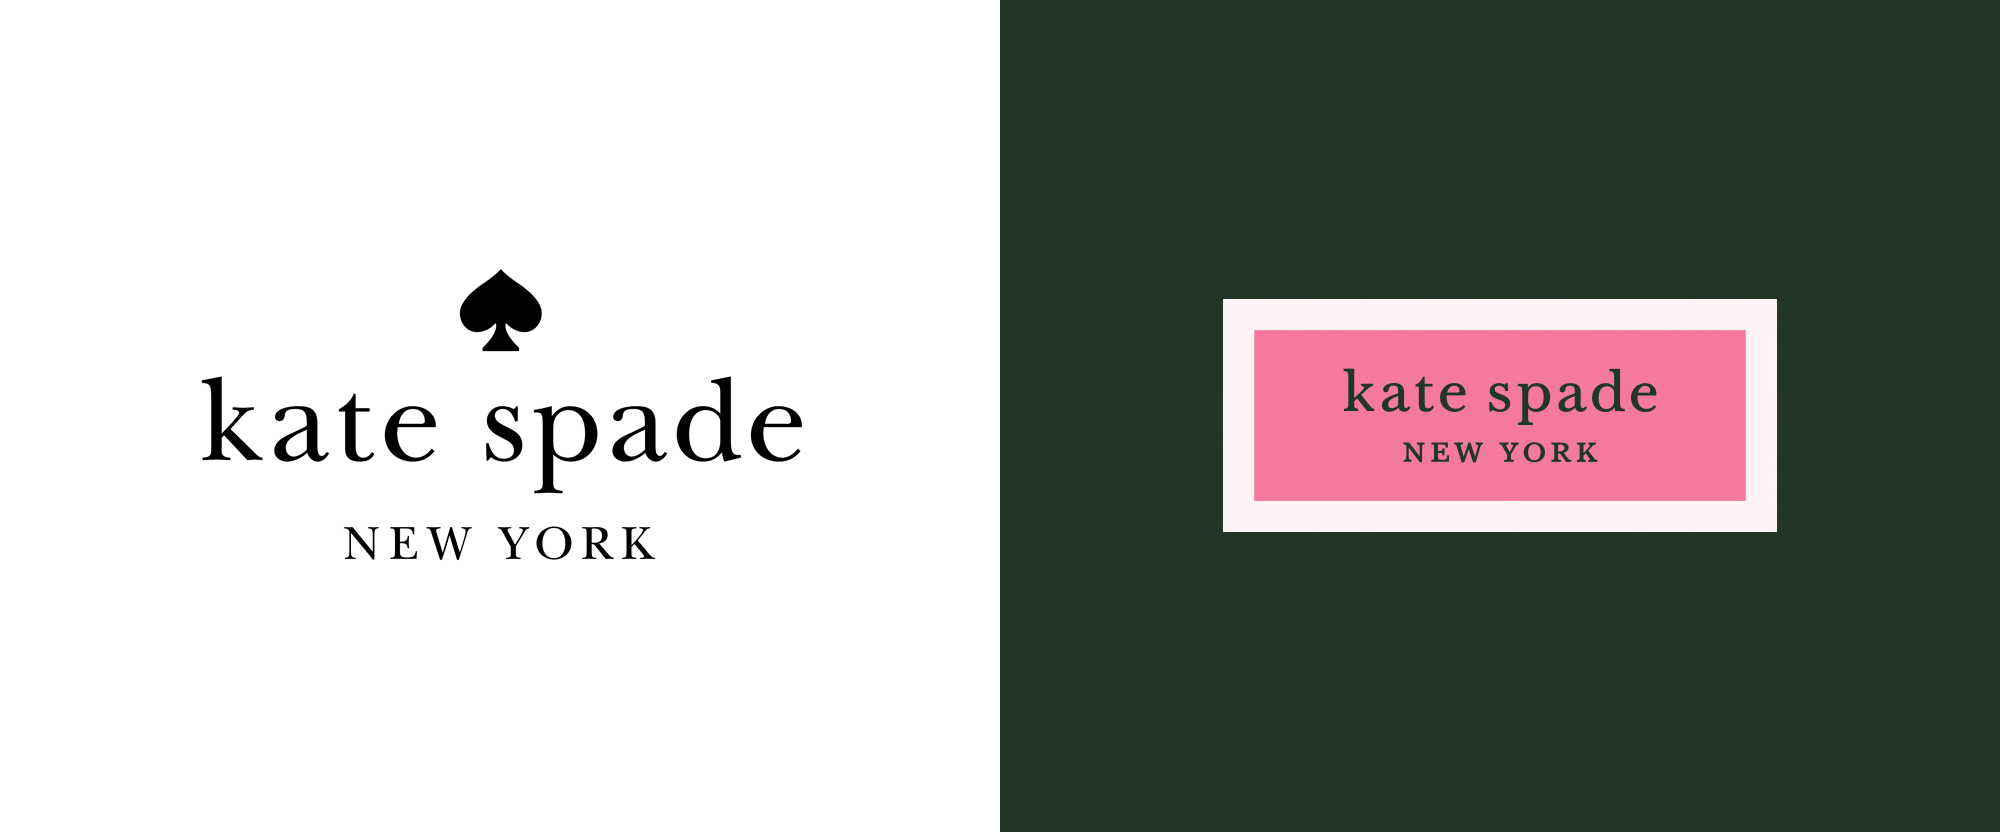 New Logo And Identity For Kate Spade Kate Spade Logo Kate Spade Instagram Kate Spade Brand